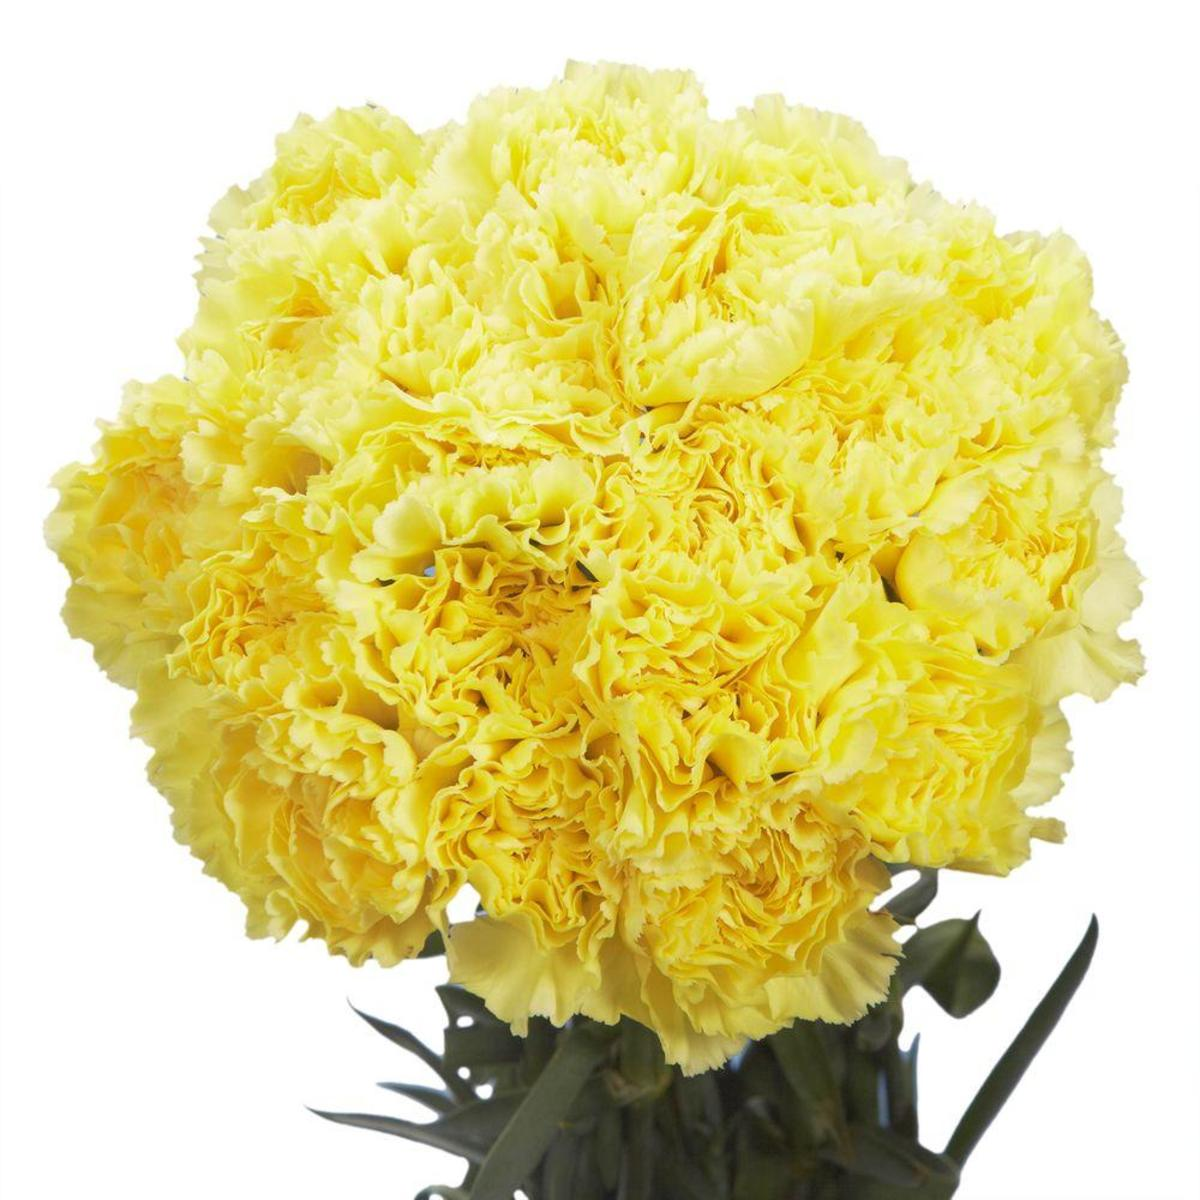 A yellow carnation bouquet looks simple yet beautiful.